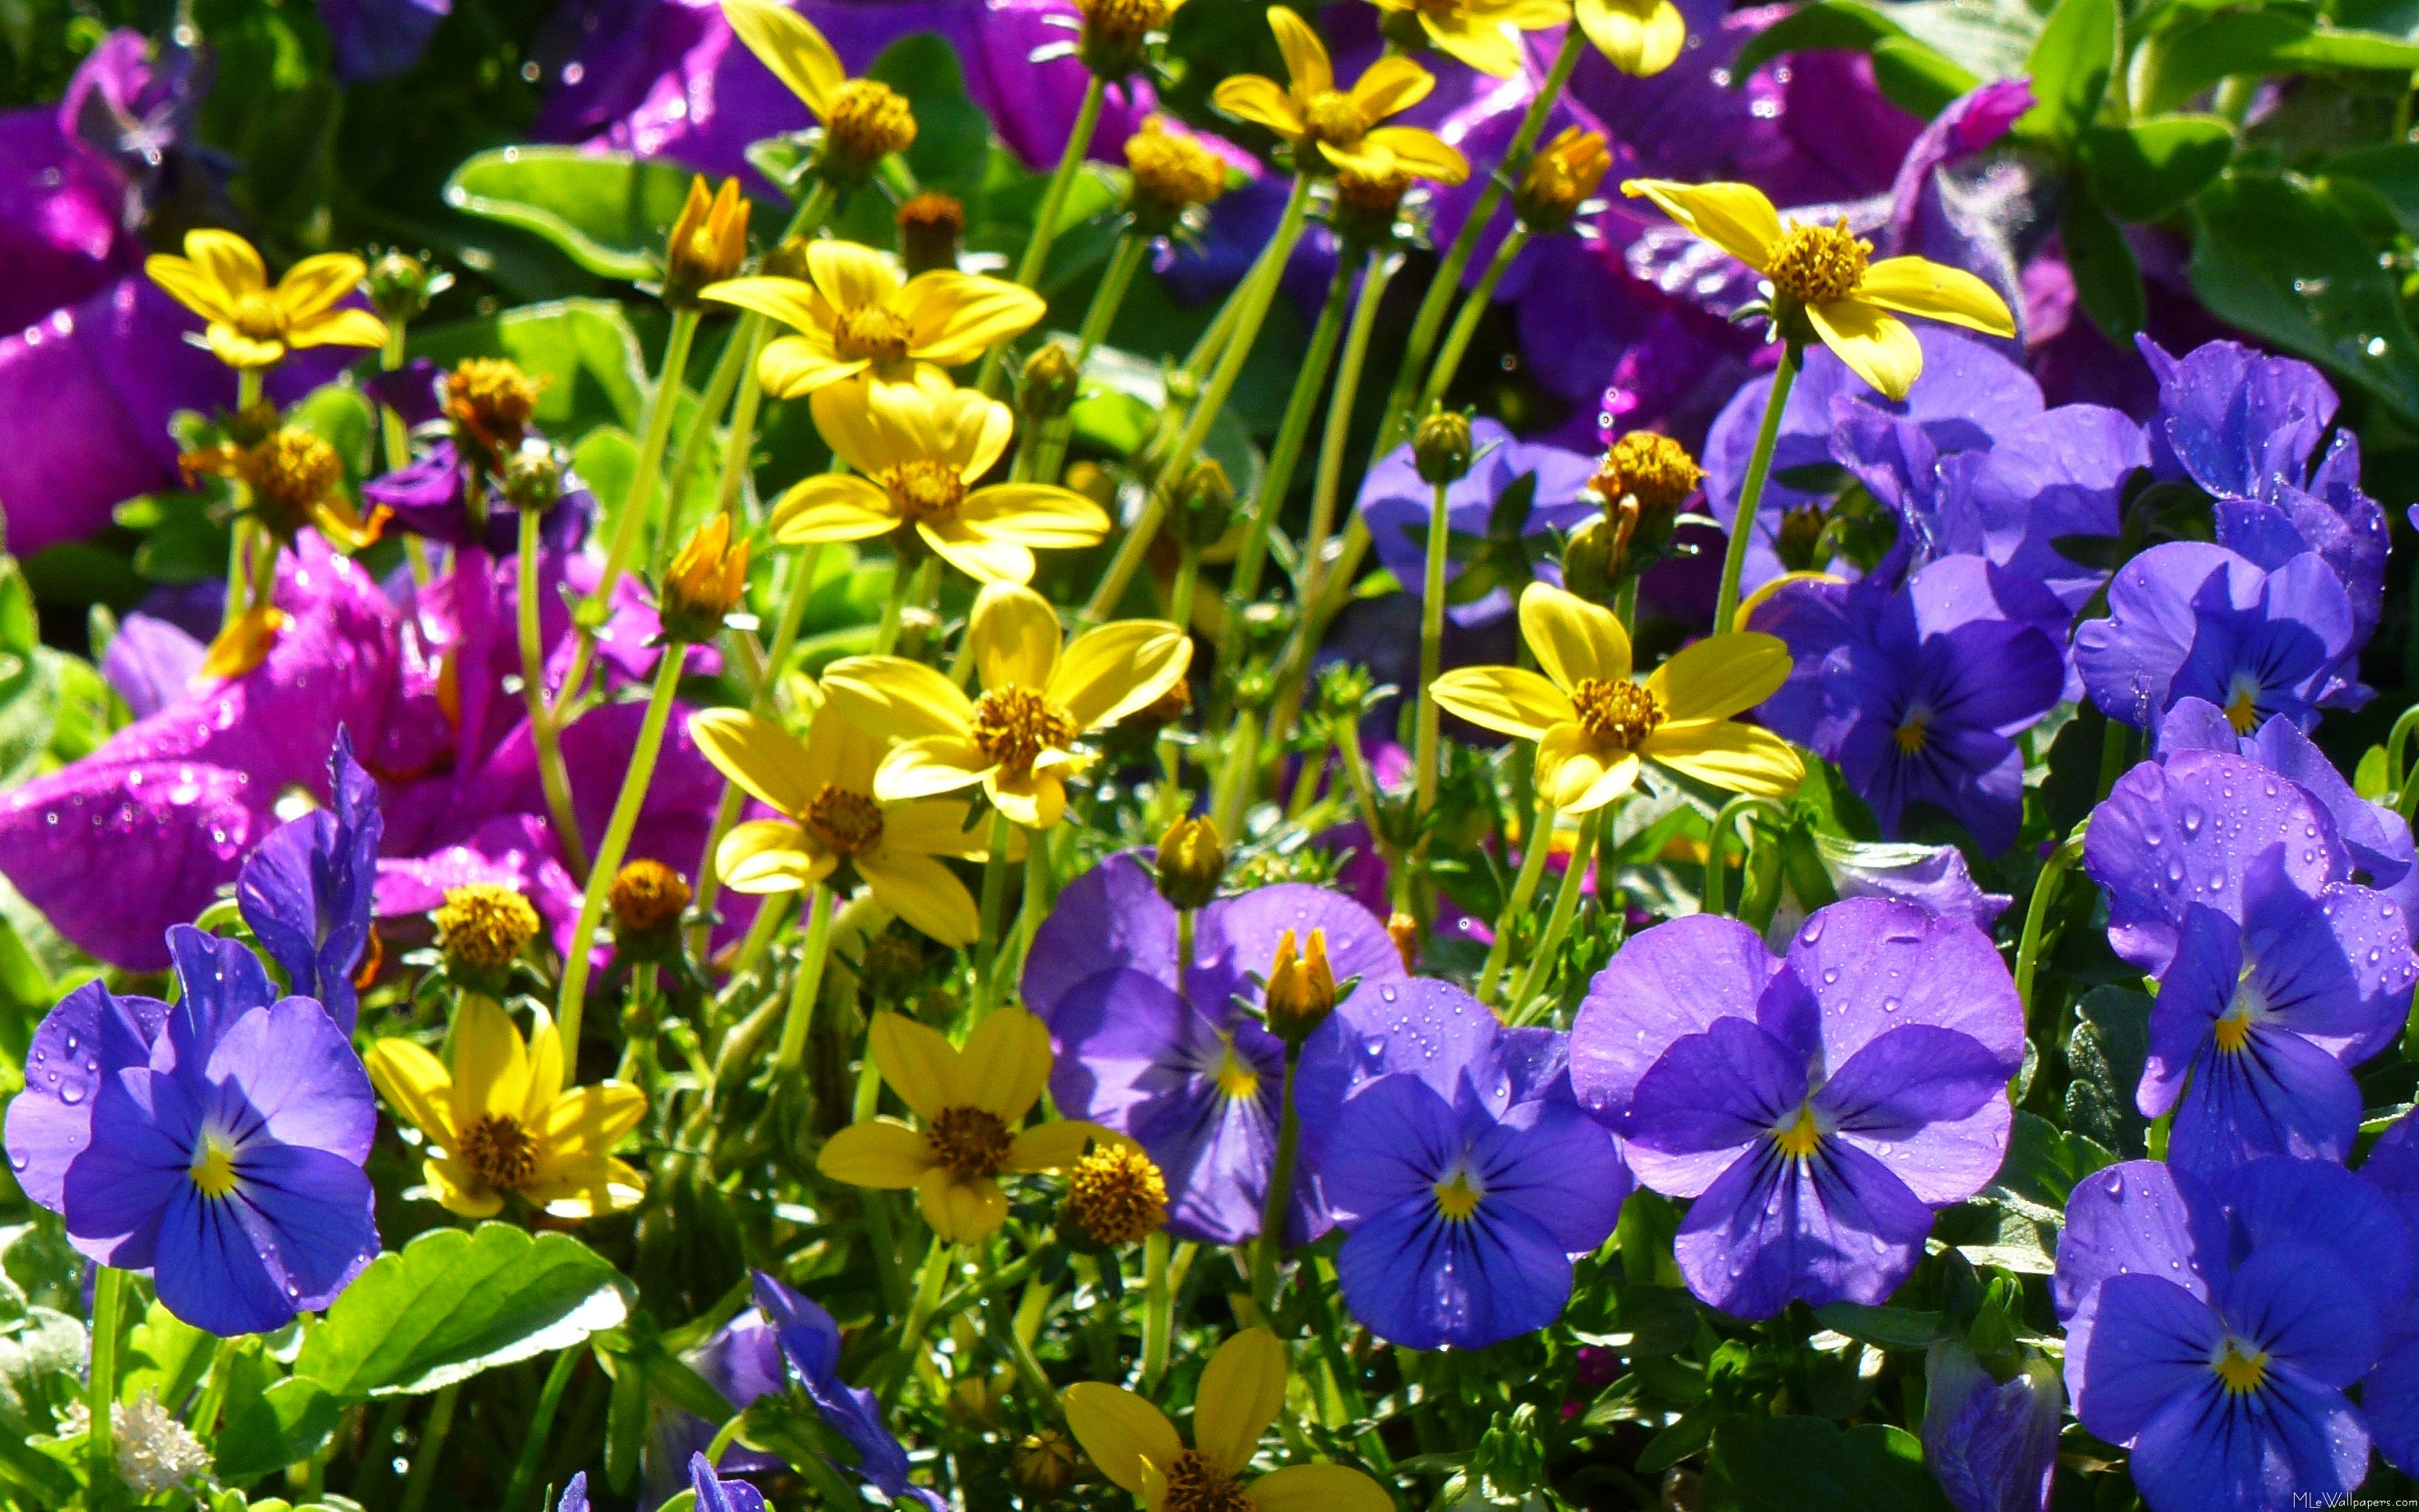 MLeWallpapers.com - Yellow Coreopsis and Purple Violas